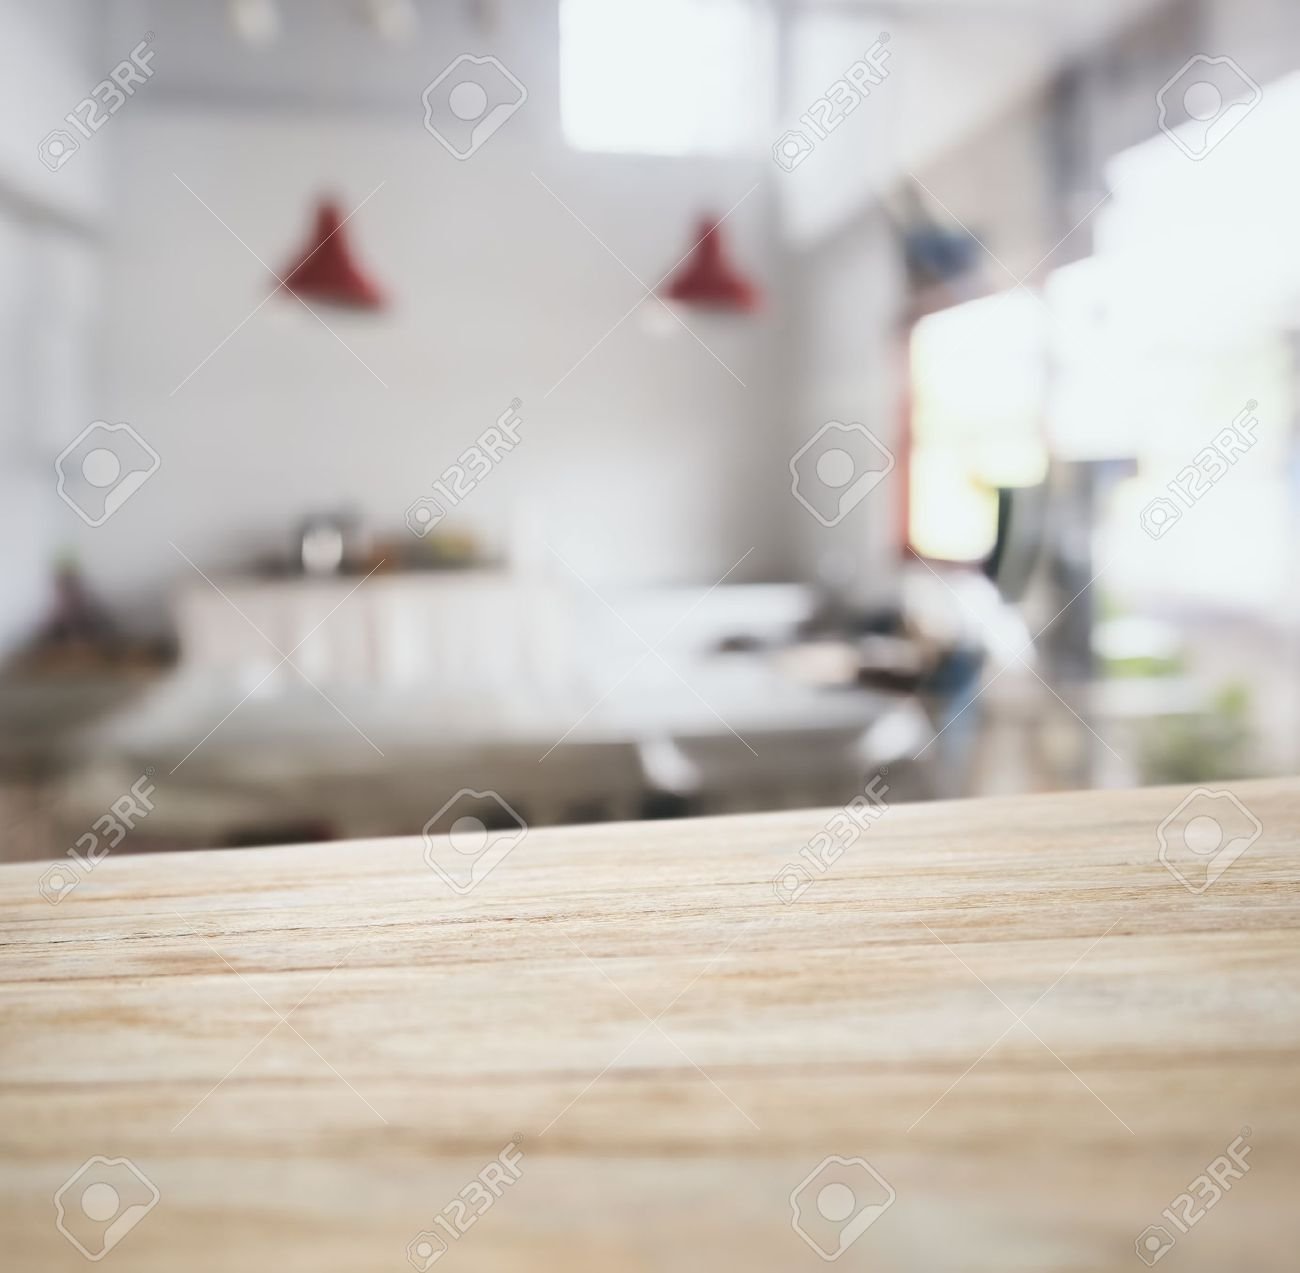 Kitchen Table Background Classy Dining Table Images & Stock Picturesroyalty Free Dining Table Inspiration